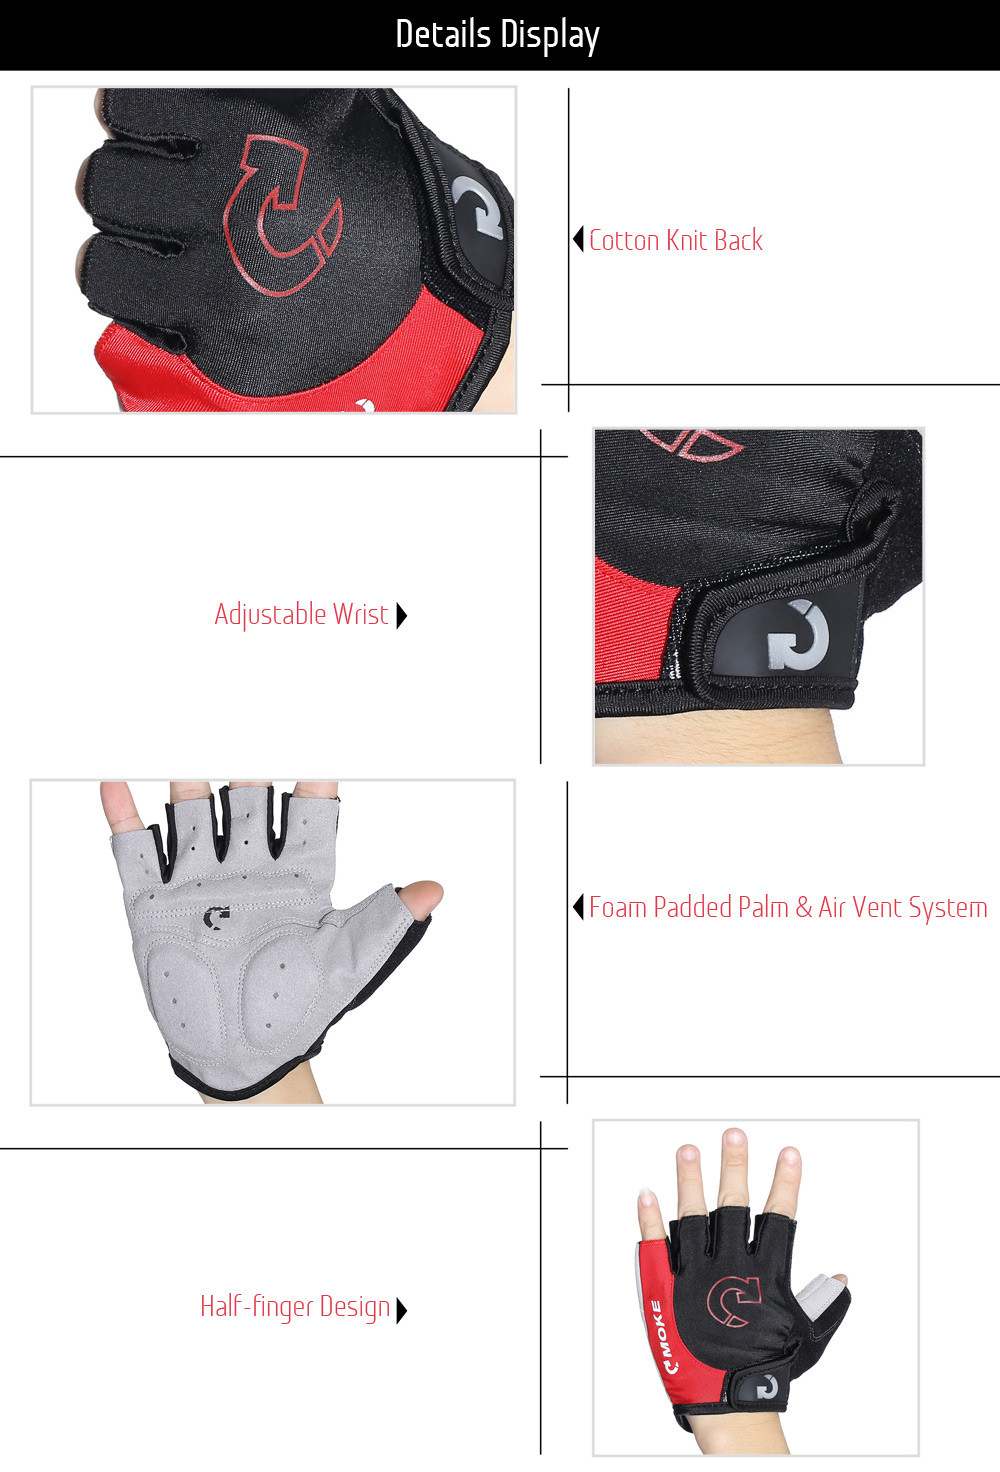 MOKE 1002 Pair of Adjustable Half-finger Cycling Gloves Breathable Shock-resistant Bike Accessories